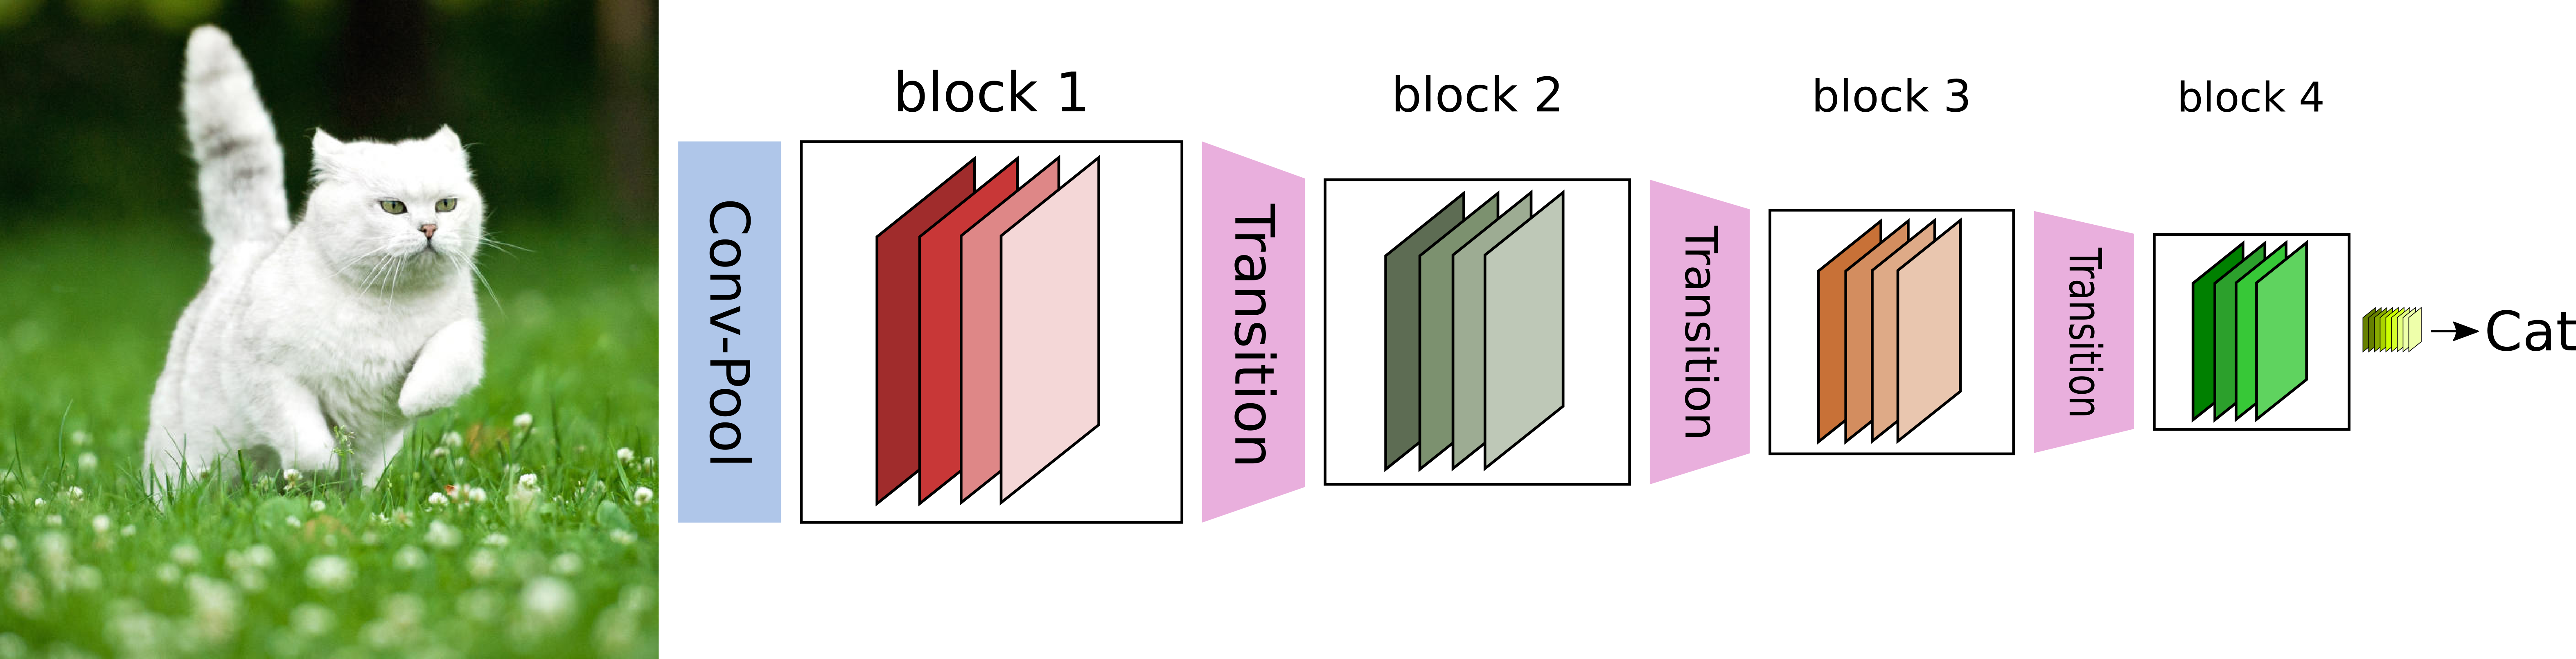 Densely Connected Convolutional Networks in Tensorflow - Thalles' blog